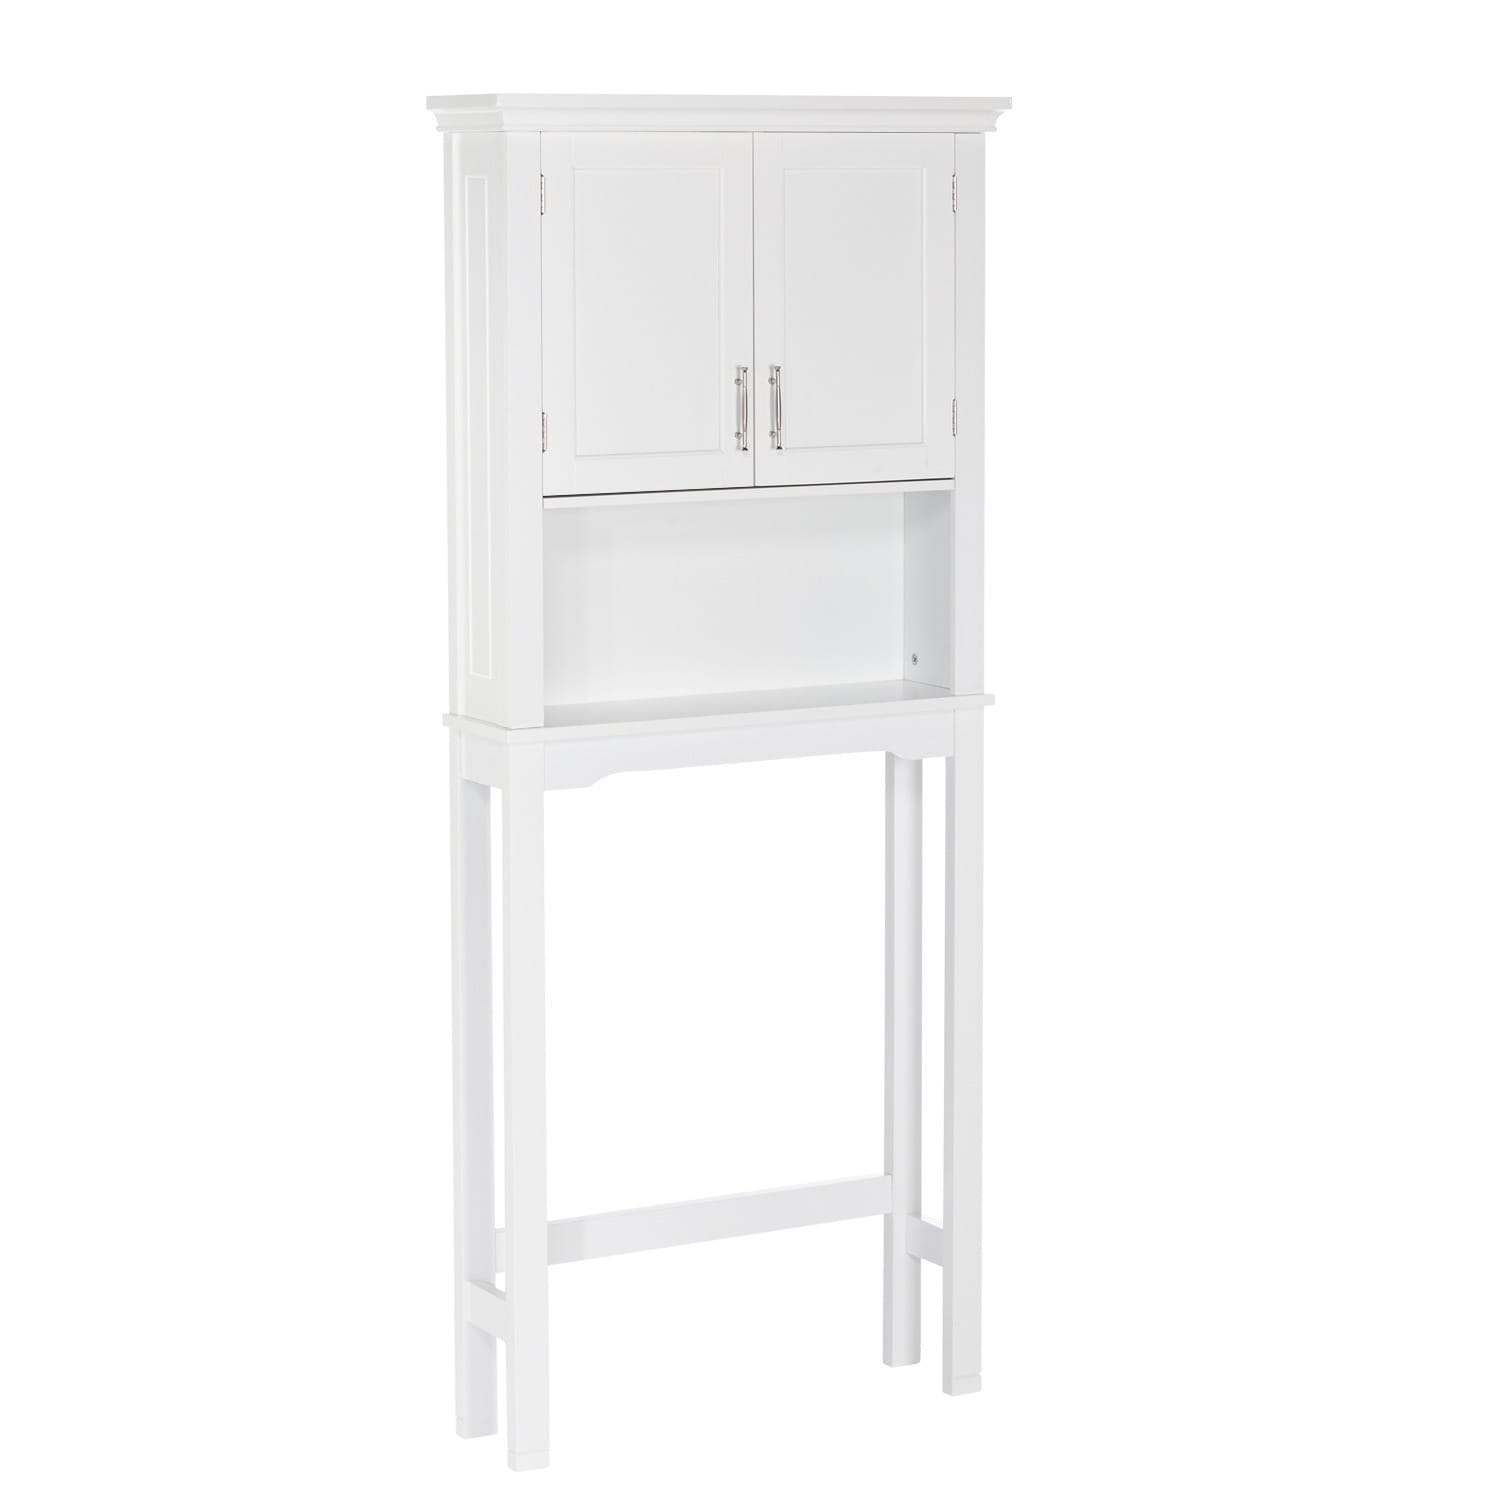 space saver cabinet overstock shopping great deals on bathroom